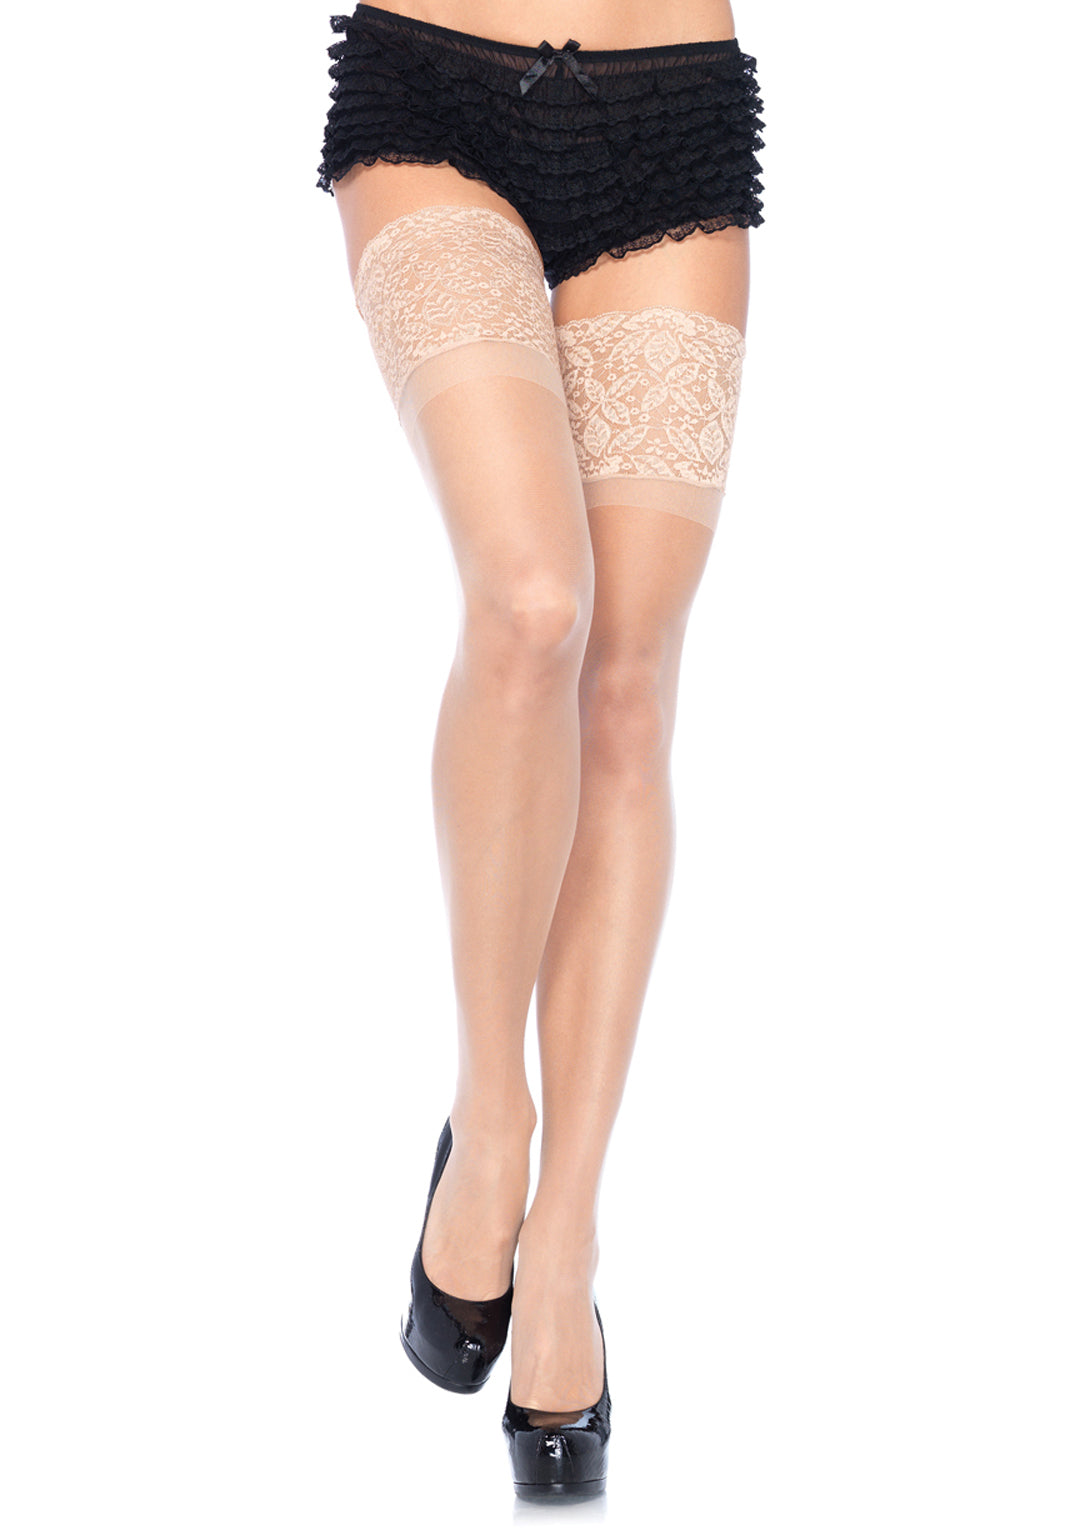 Stay Up Thigh High with 5 Inch Top- Queen Size